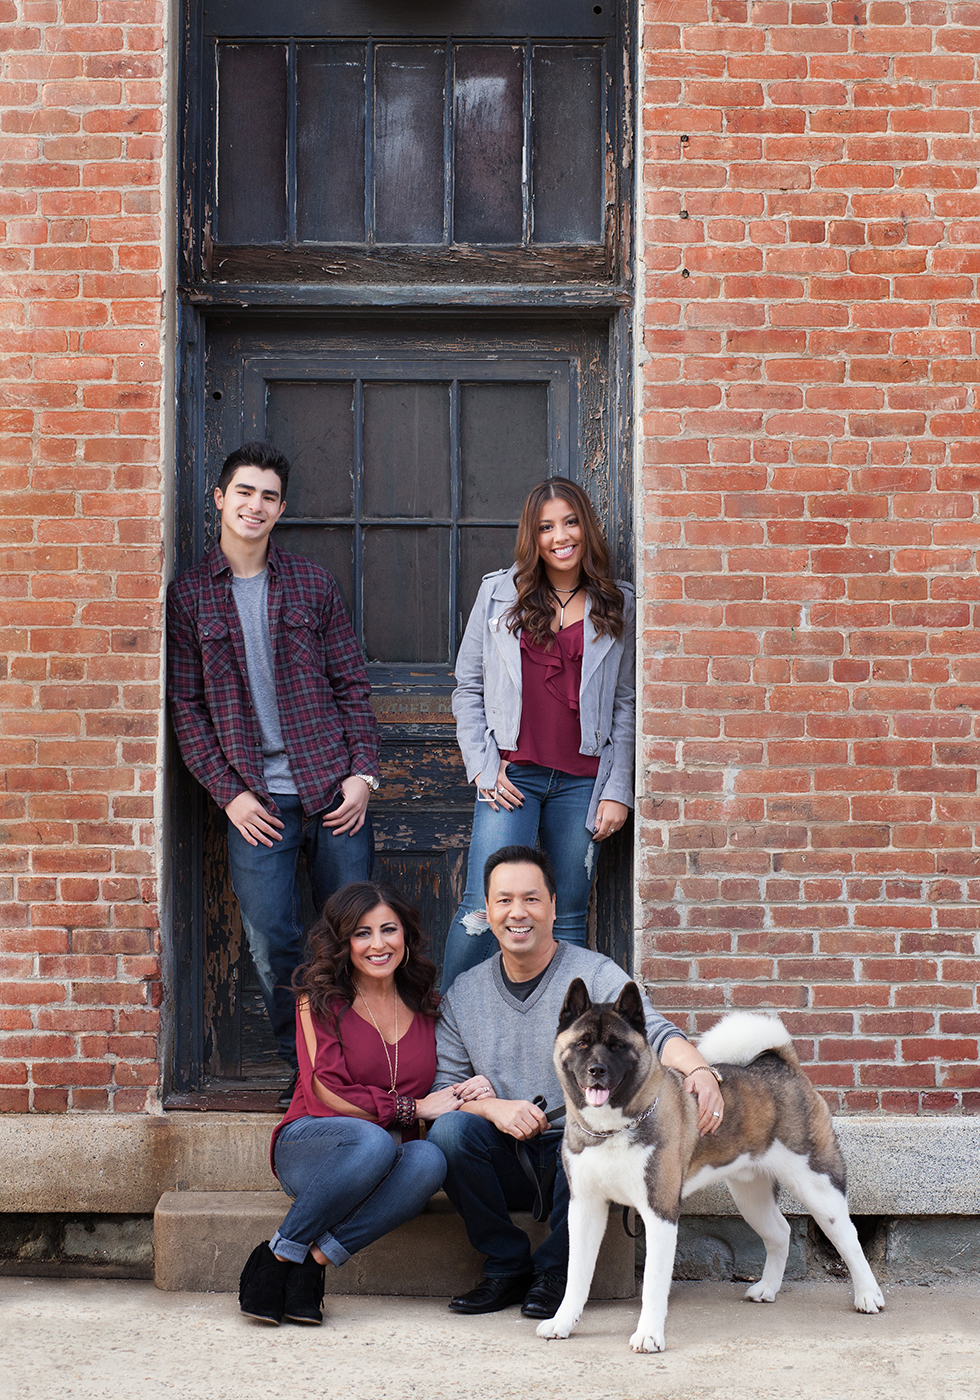 IMG_9782_urban_family_portrait_brick_wall_dog_San_Ramon_Cal_high_family_gretchen-adams-photography.jpg